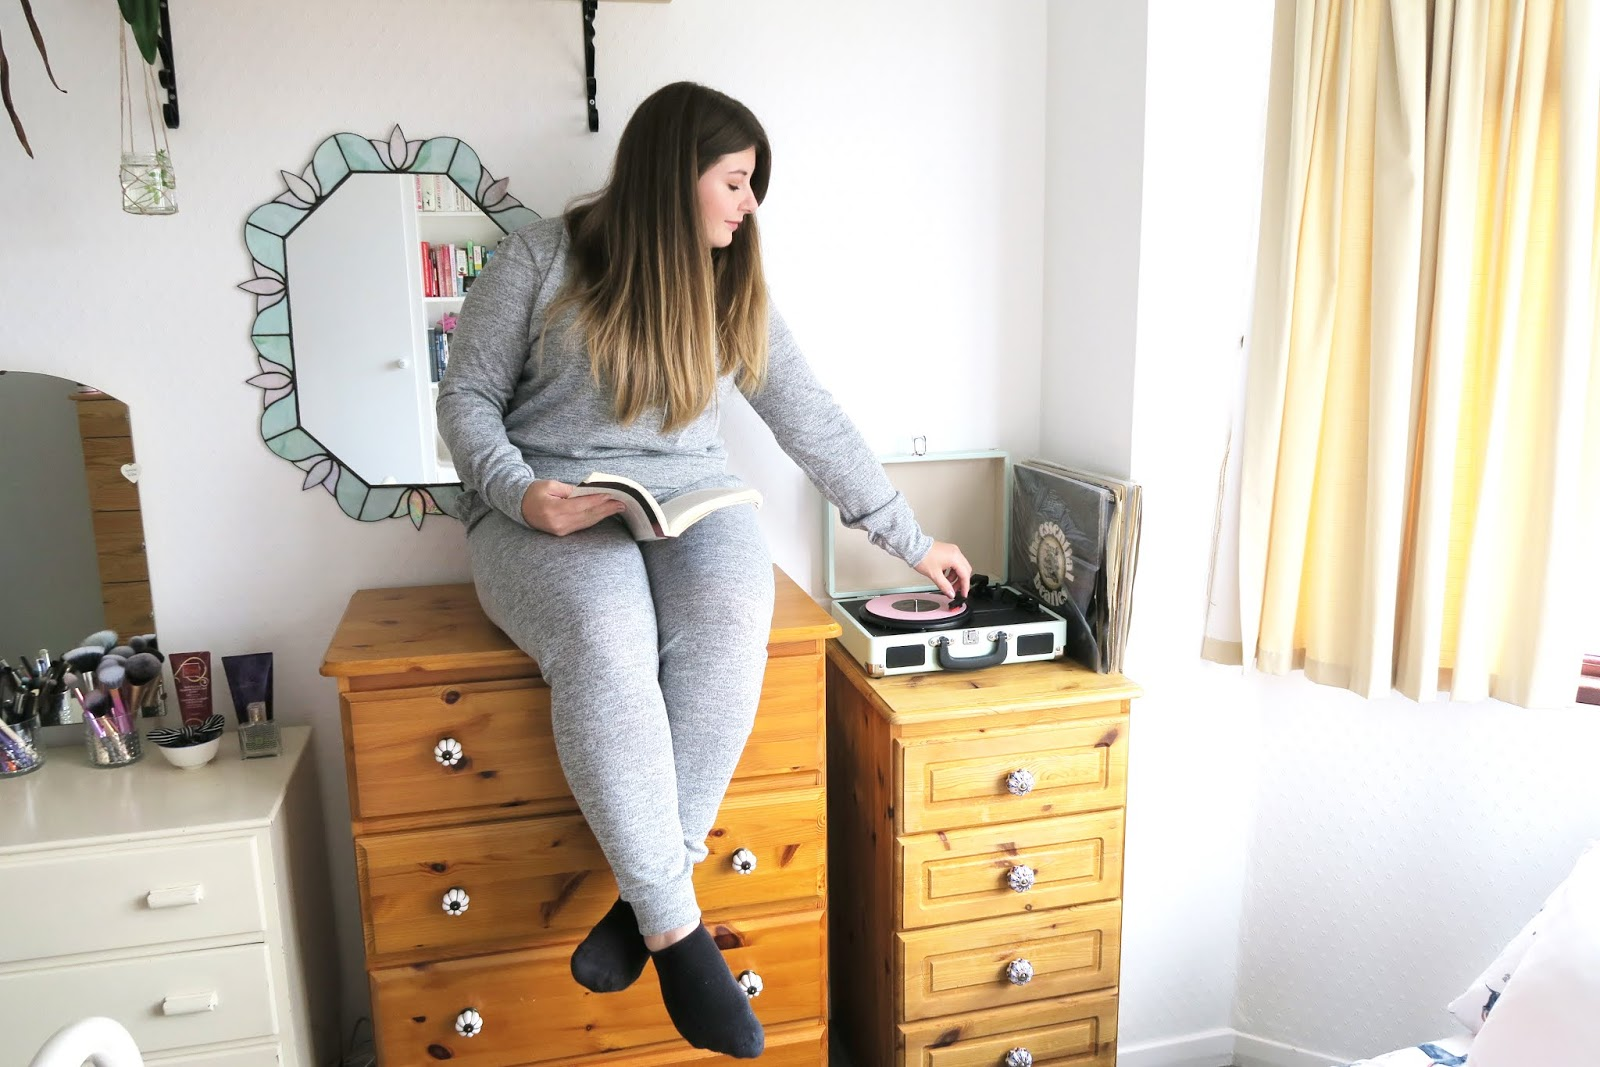 Grace can be seen sitting on top of a set of drawers wearing a grey loungewear set. She is holding a book whilst also leaning over to adjust her record player